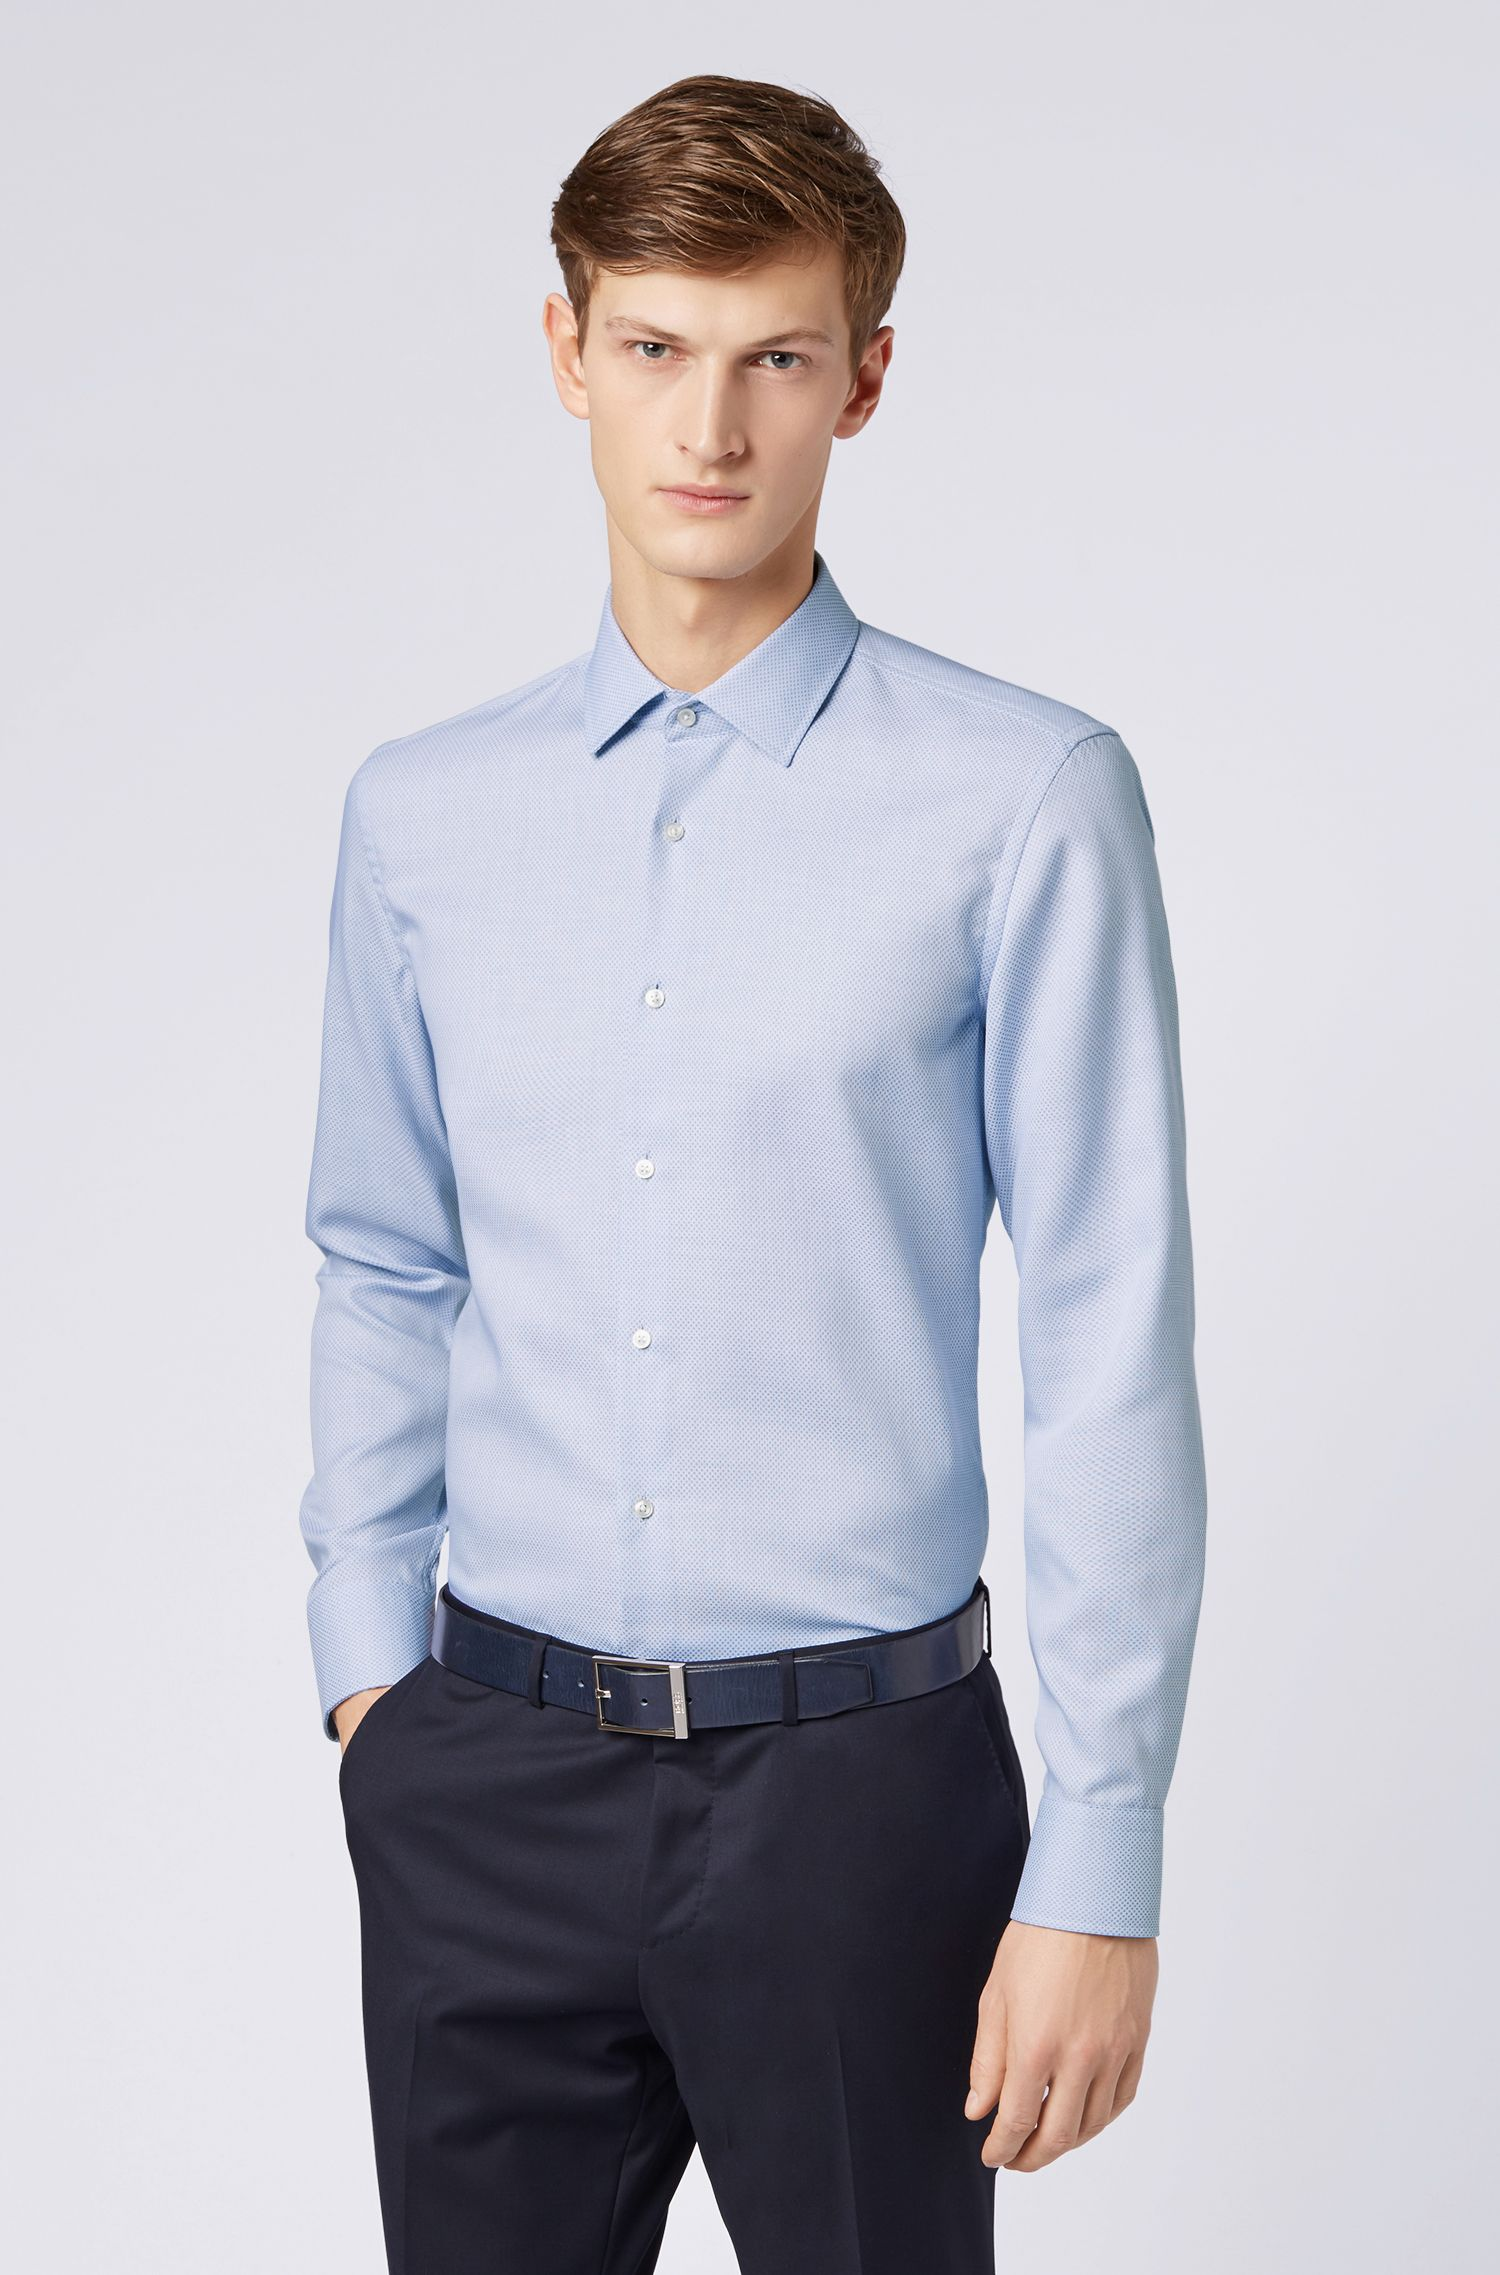 Hugo Boss - Slim-fit shirt in cotton with Aloe Vera finishing - 4